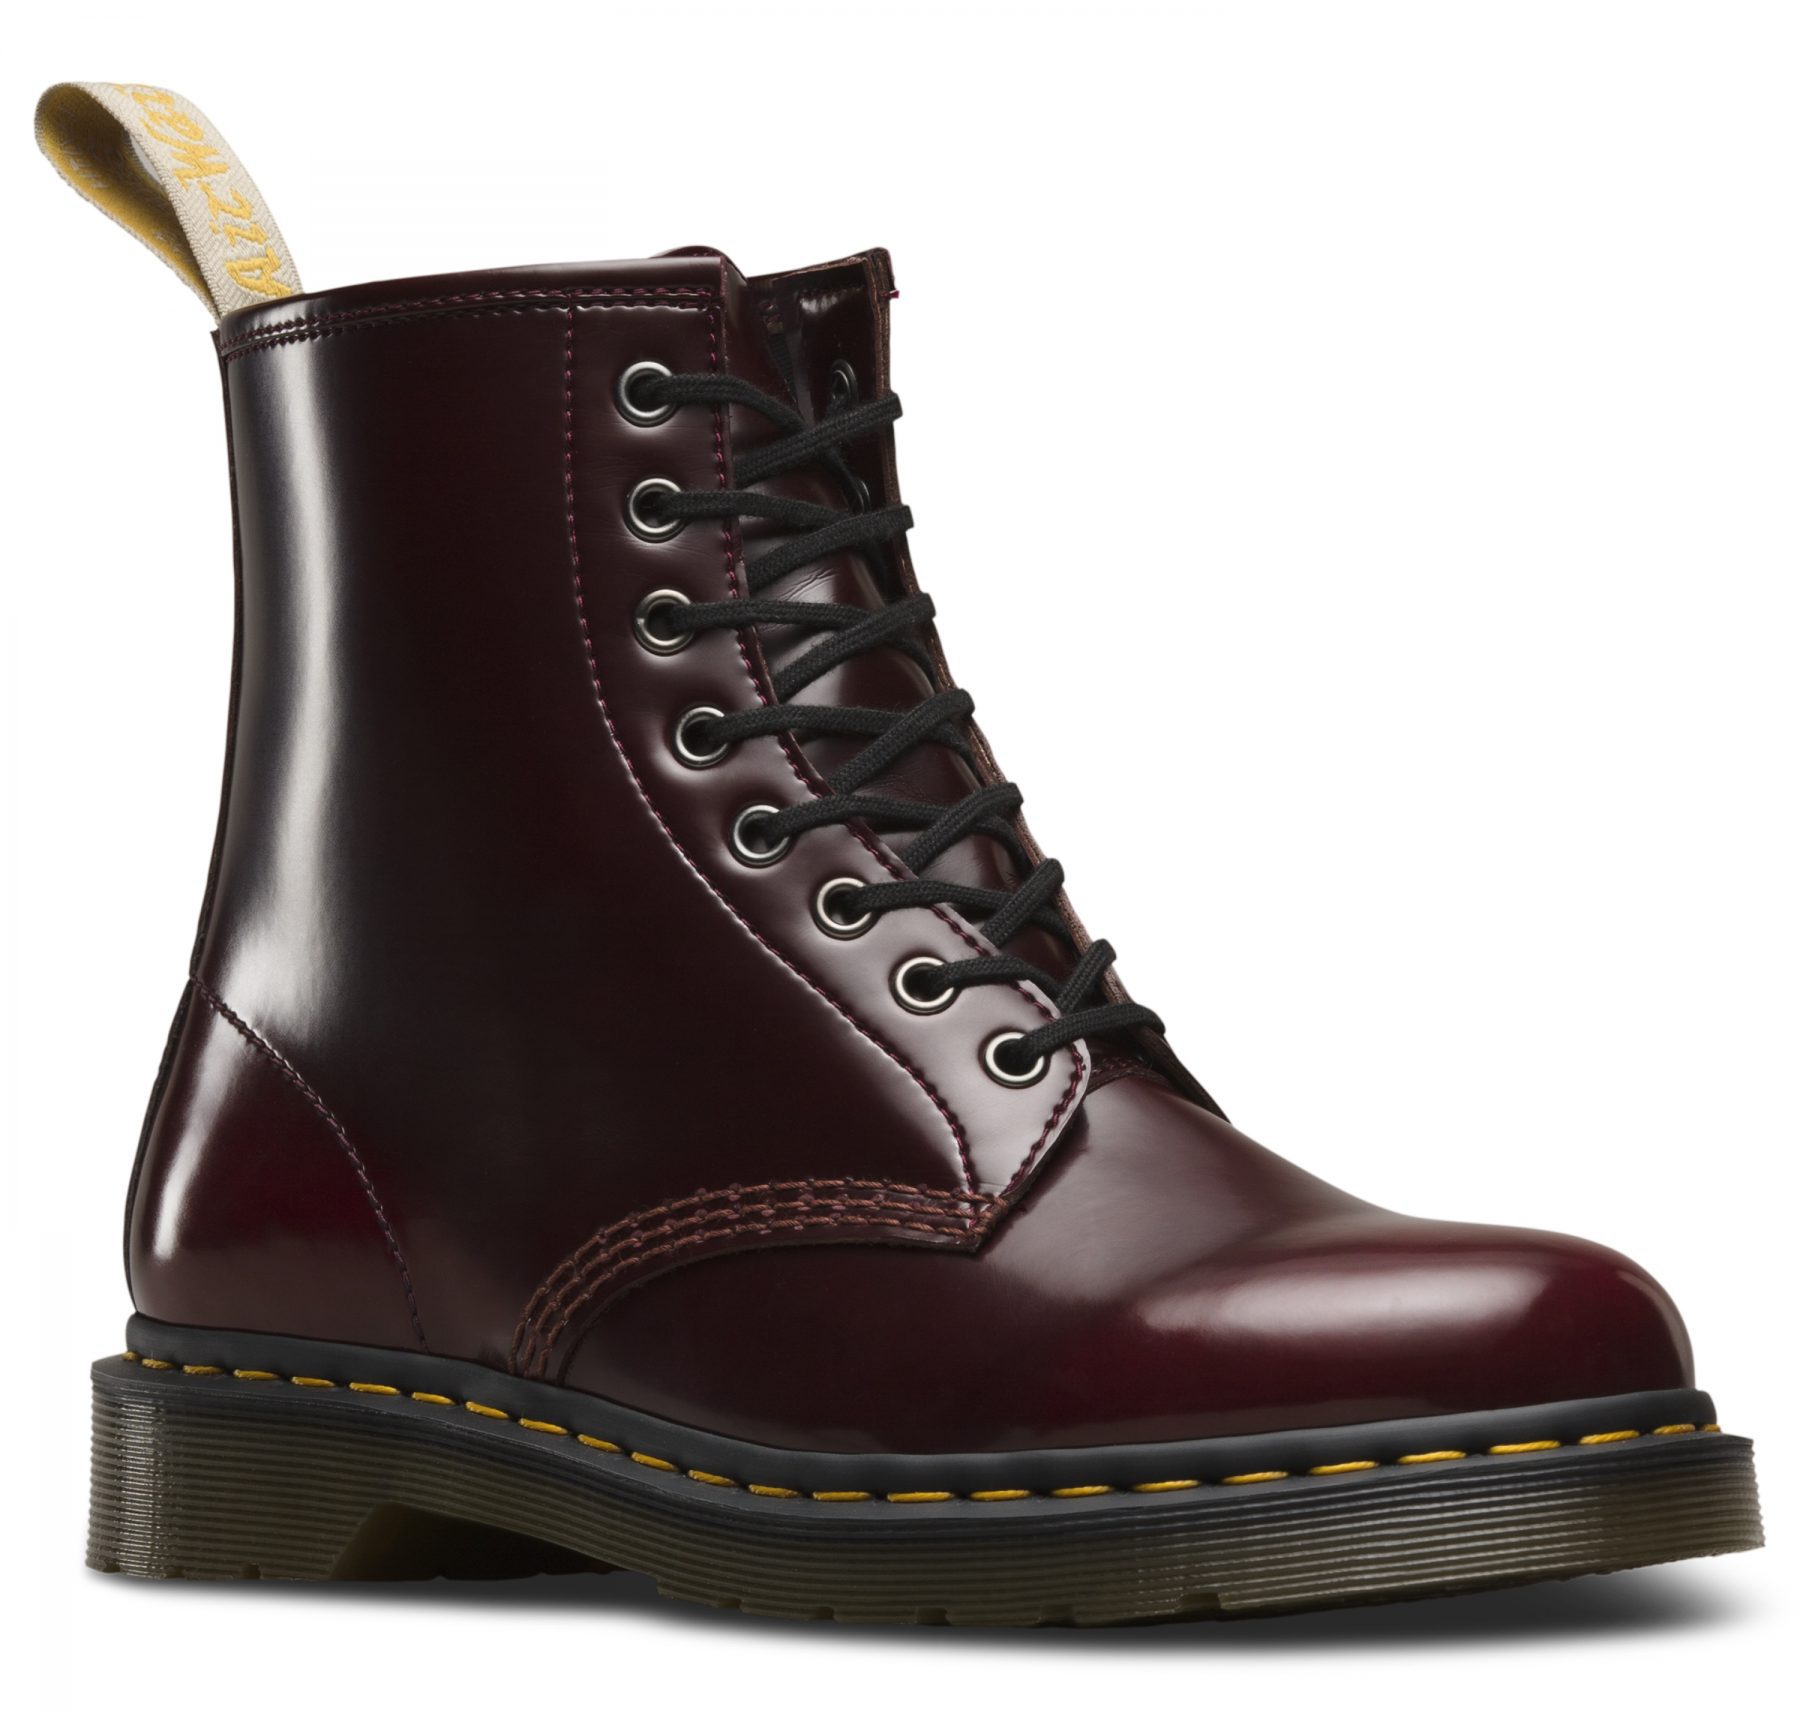 3e6c3a2d846 Items in the range include the 8-eye fastening classic style boot